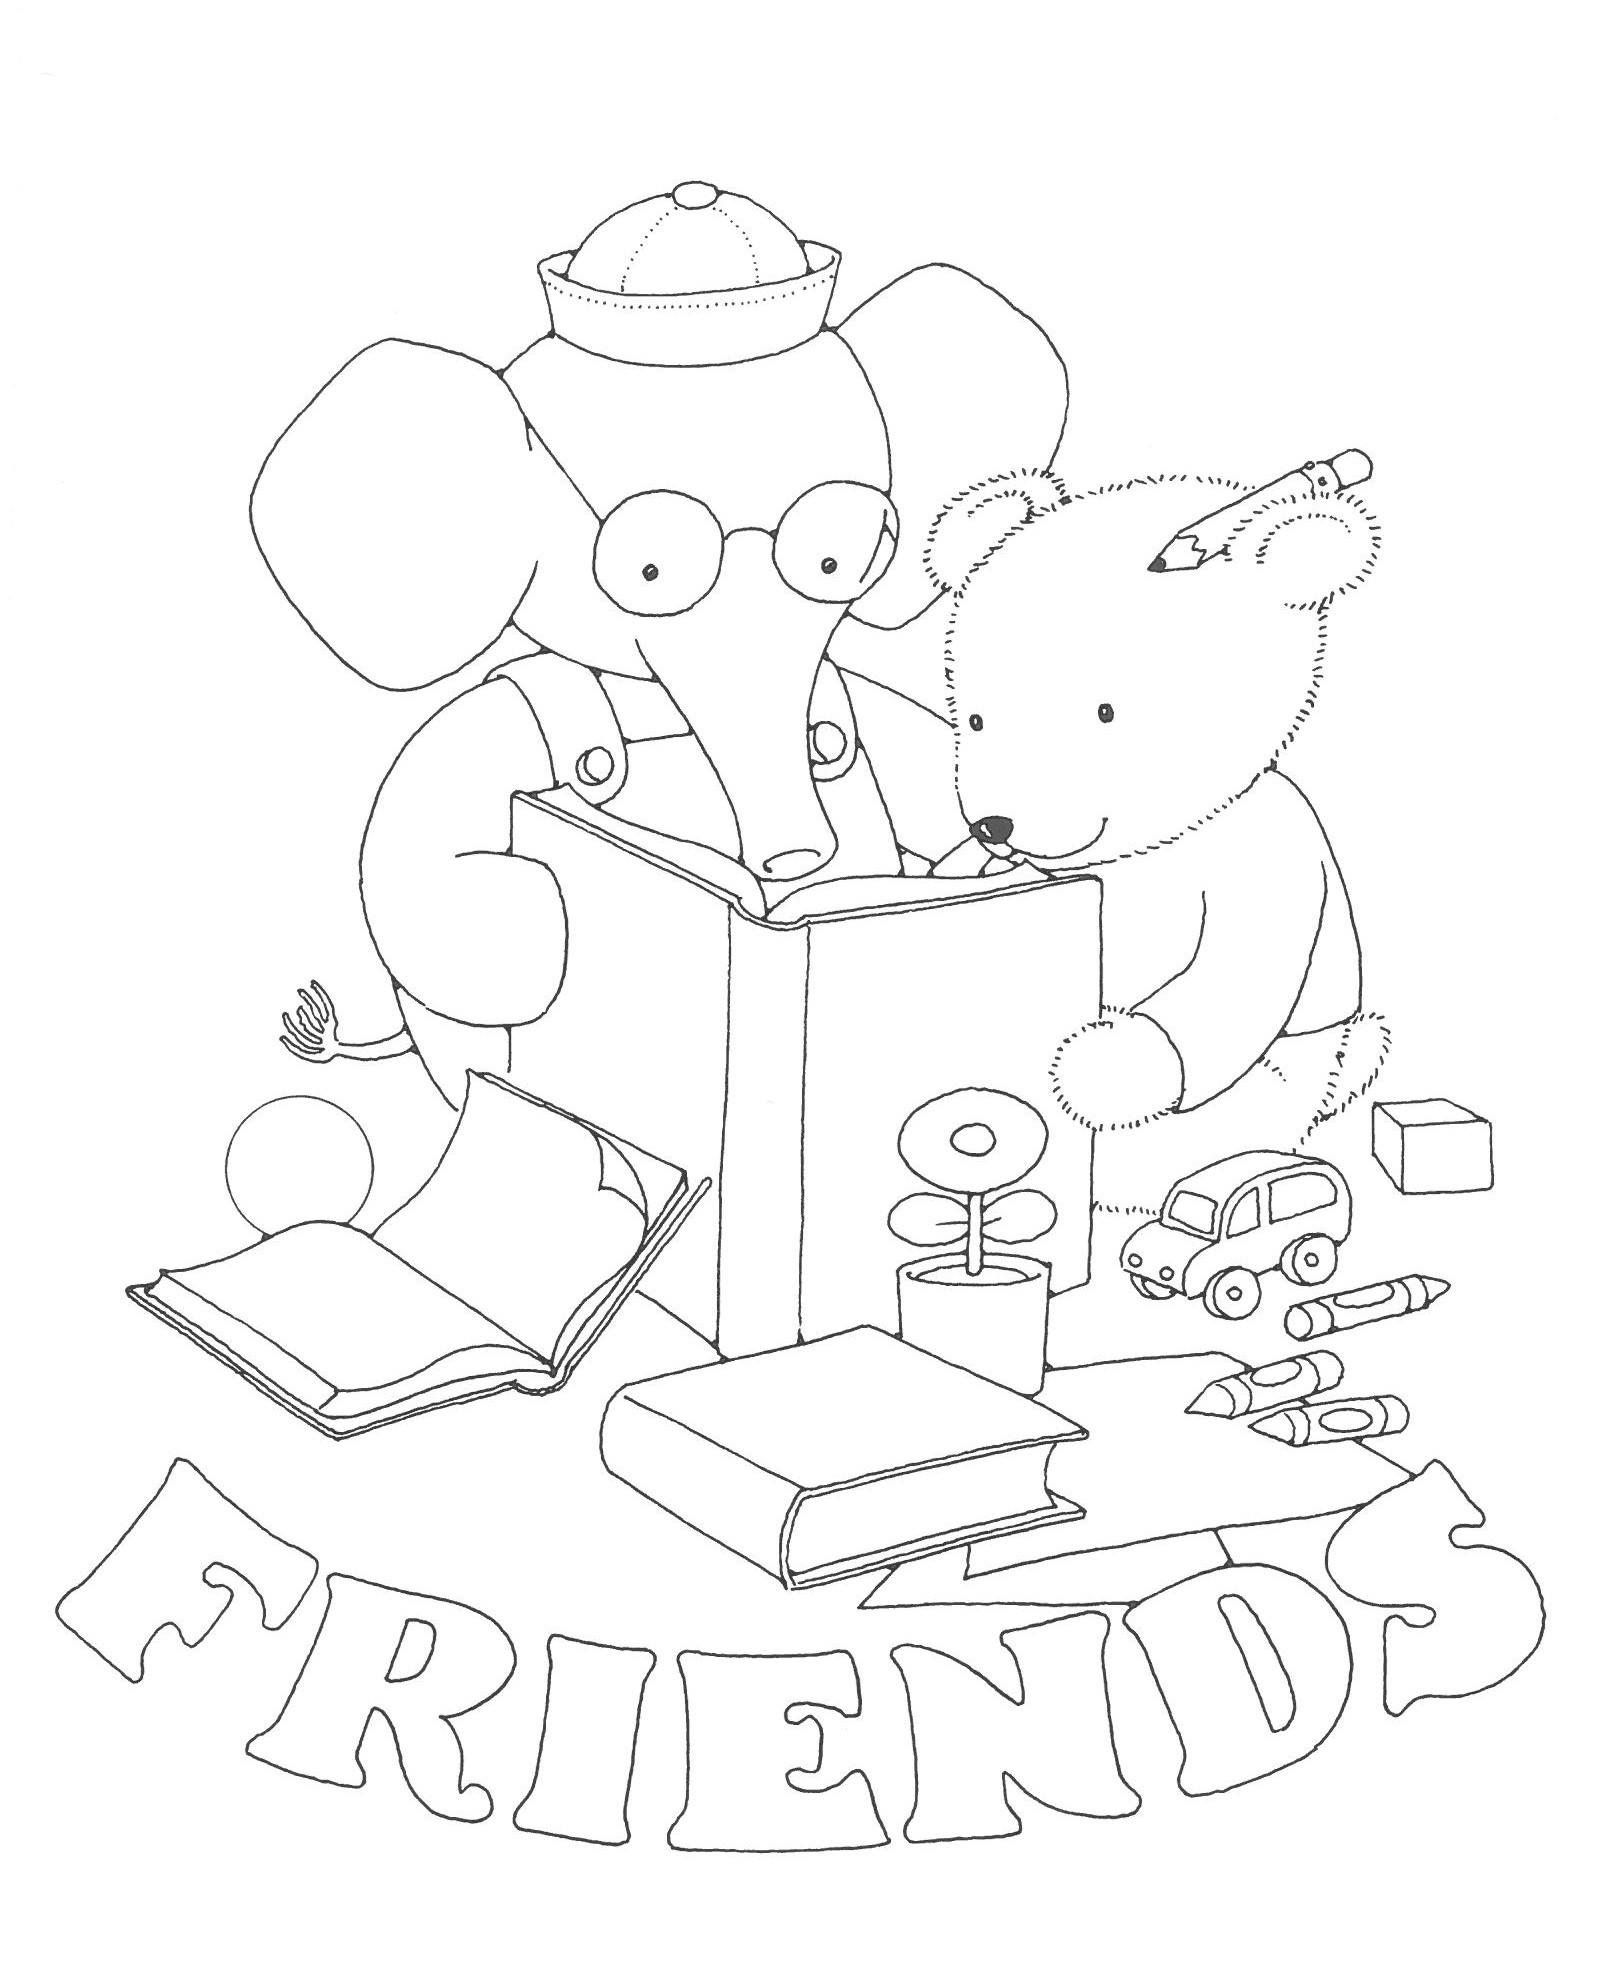 mary engelbreit coloring pages engelbreit coloring pages make a photo gallery coloring engelbreit pages coloring mary